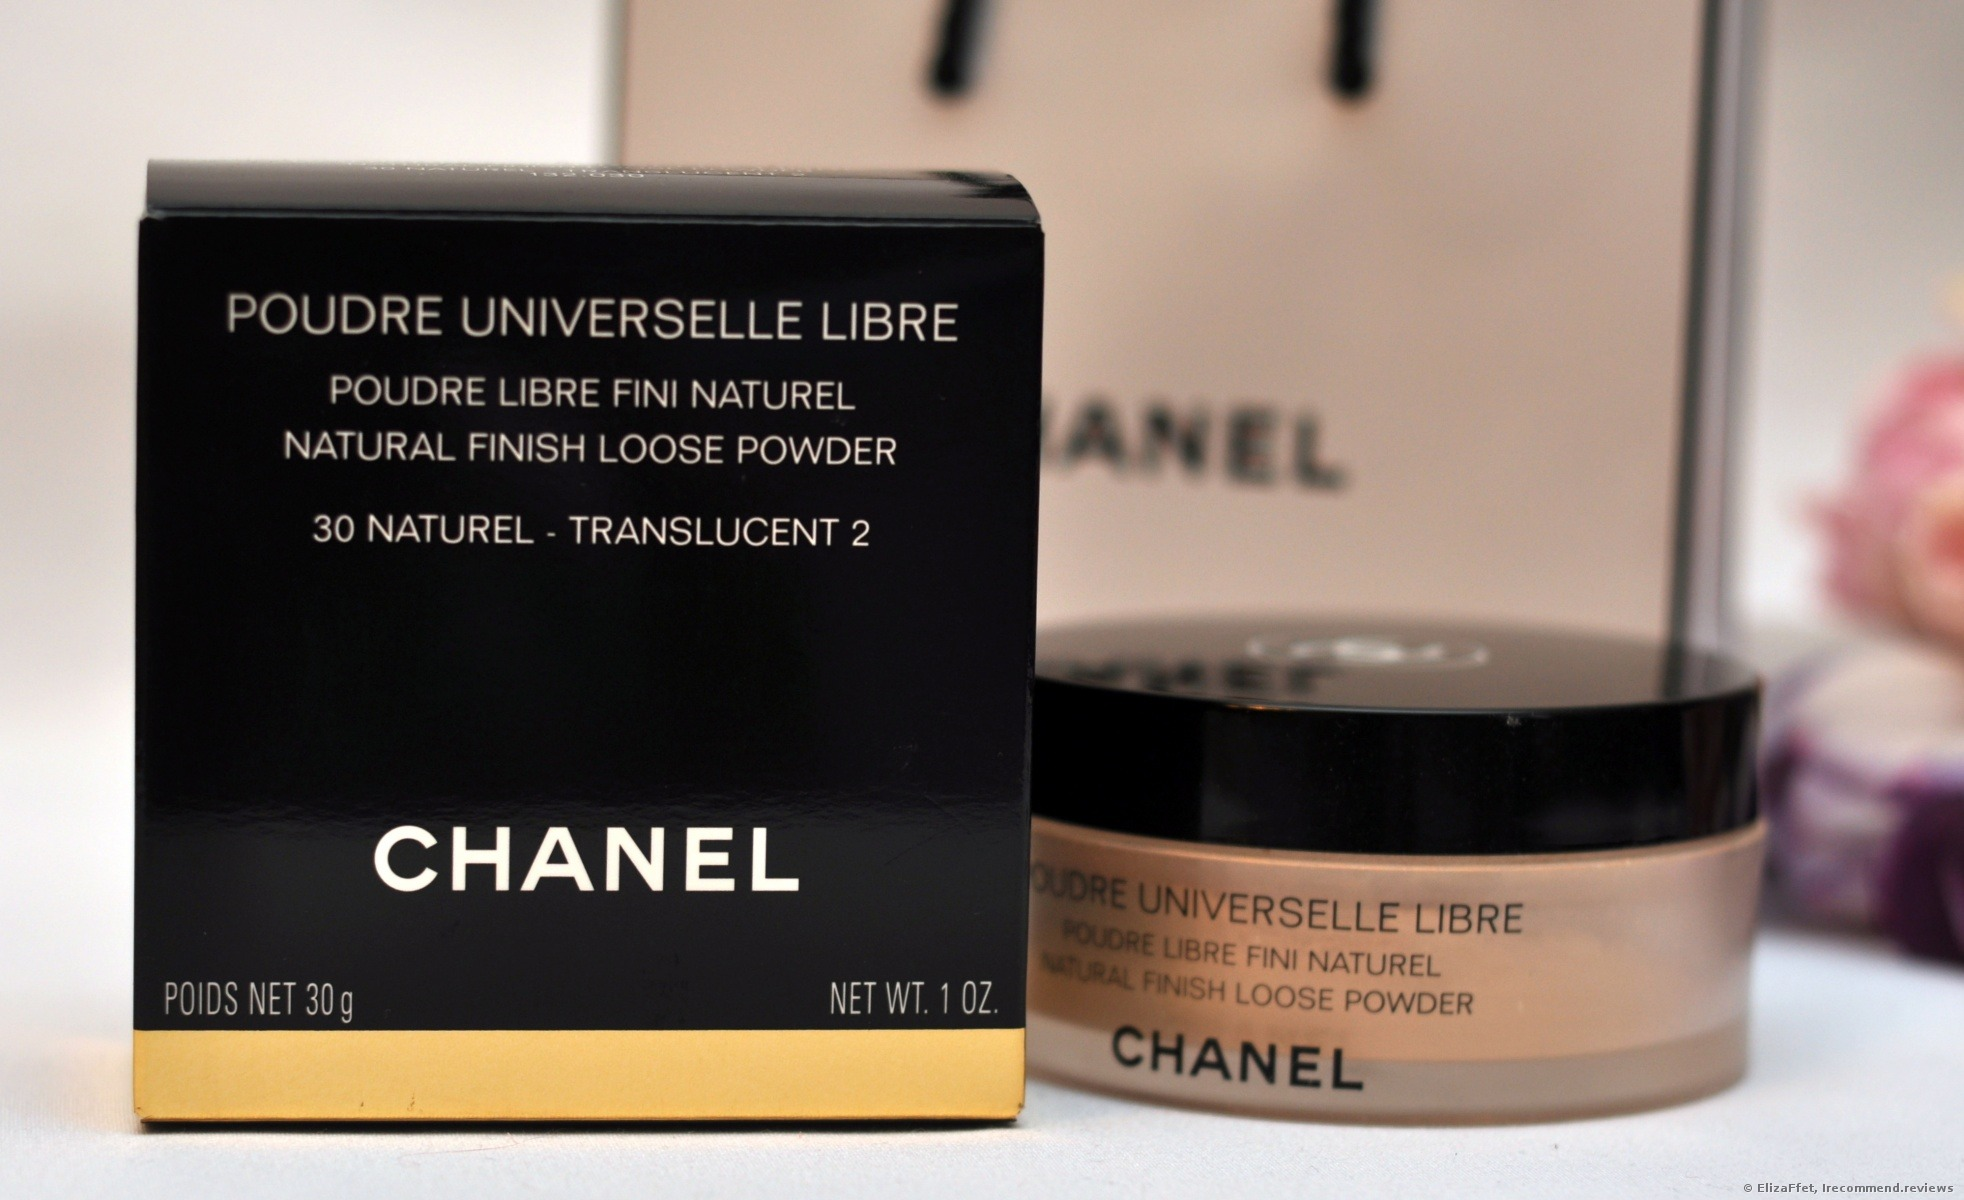 Chanel Poudre Universelle Libre Natural Finish Loose Powder Ideal